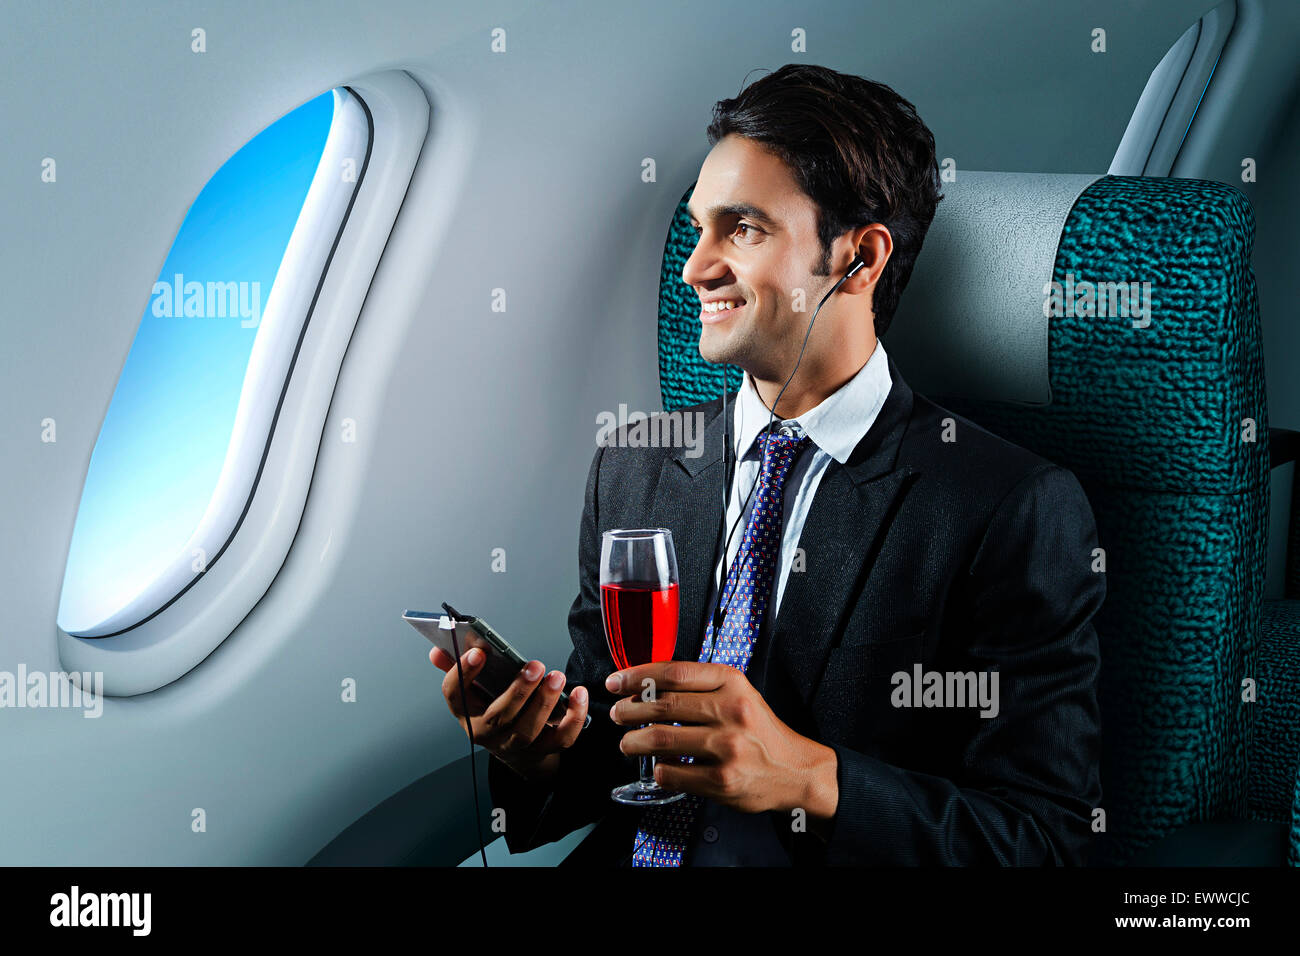 1 indian Business Man Sitting Airplane and Mobile Phone Hearing Music - Stock Image